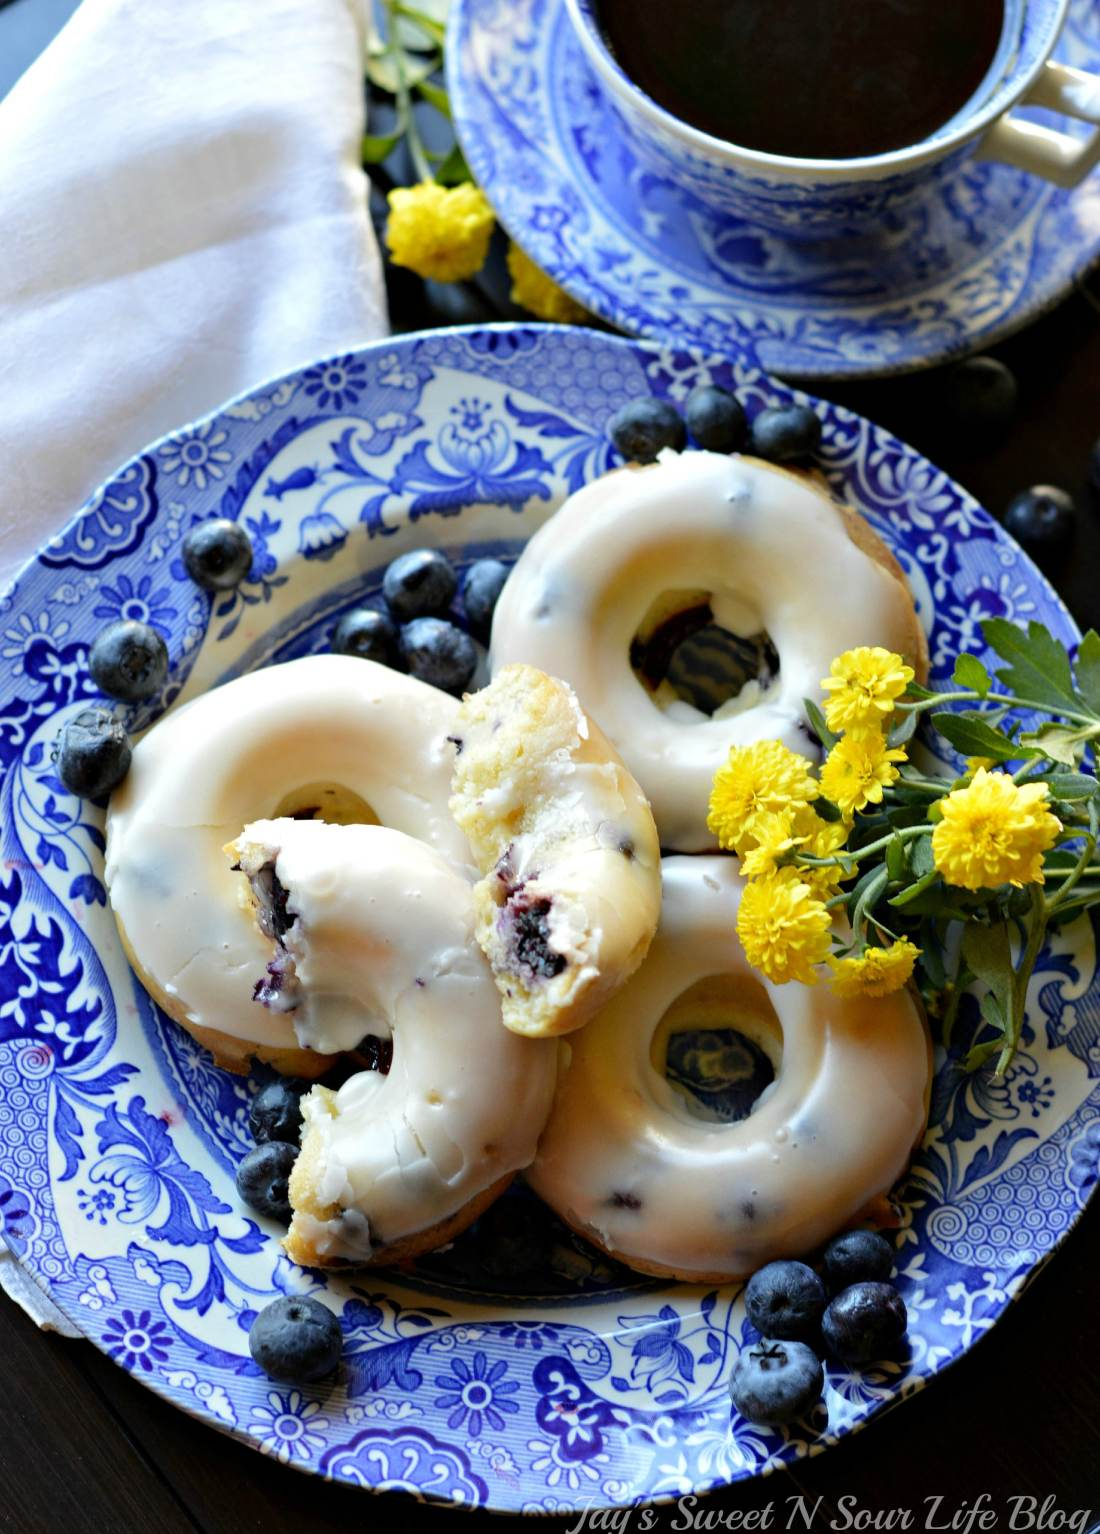 Banana Blueberry Donuts Overhead Shot. This light and tasty Banana Blueberry Baked Donuts recipe is made with fresh blueberries and ripe banana's. Try my yeast free donut recipe today.